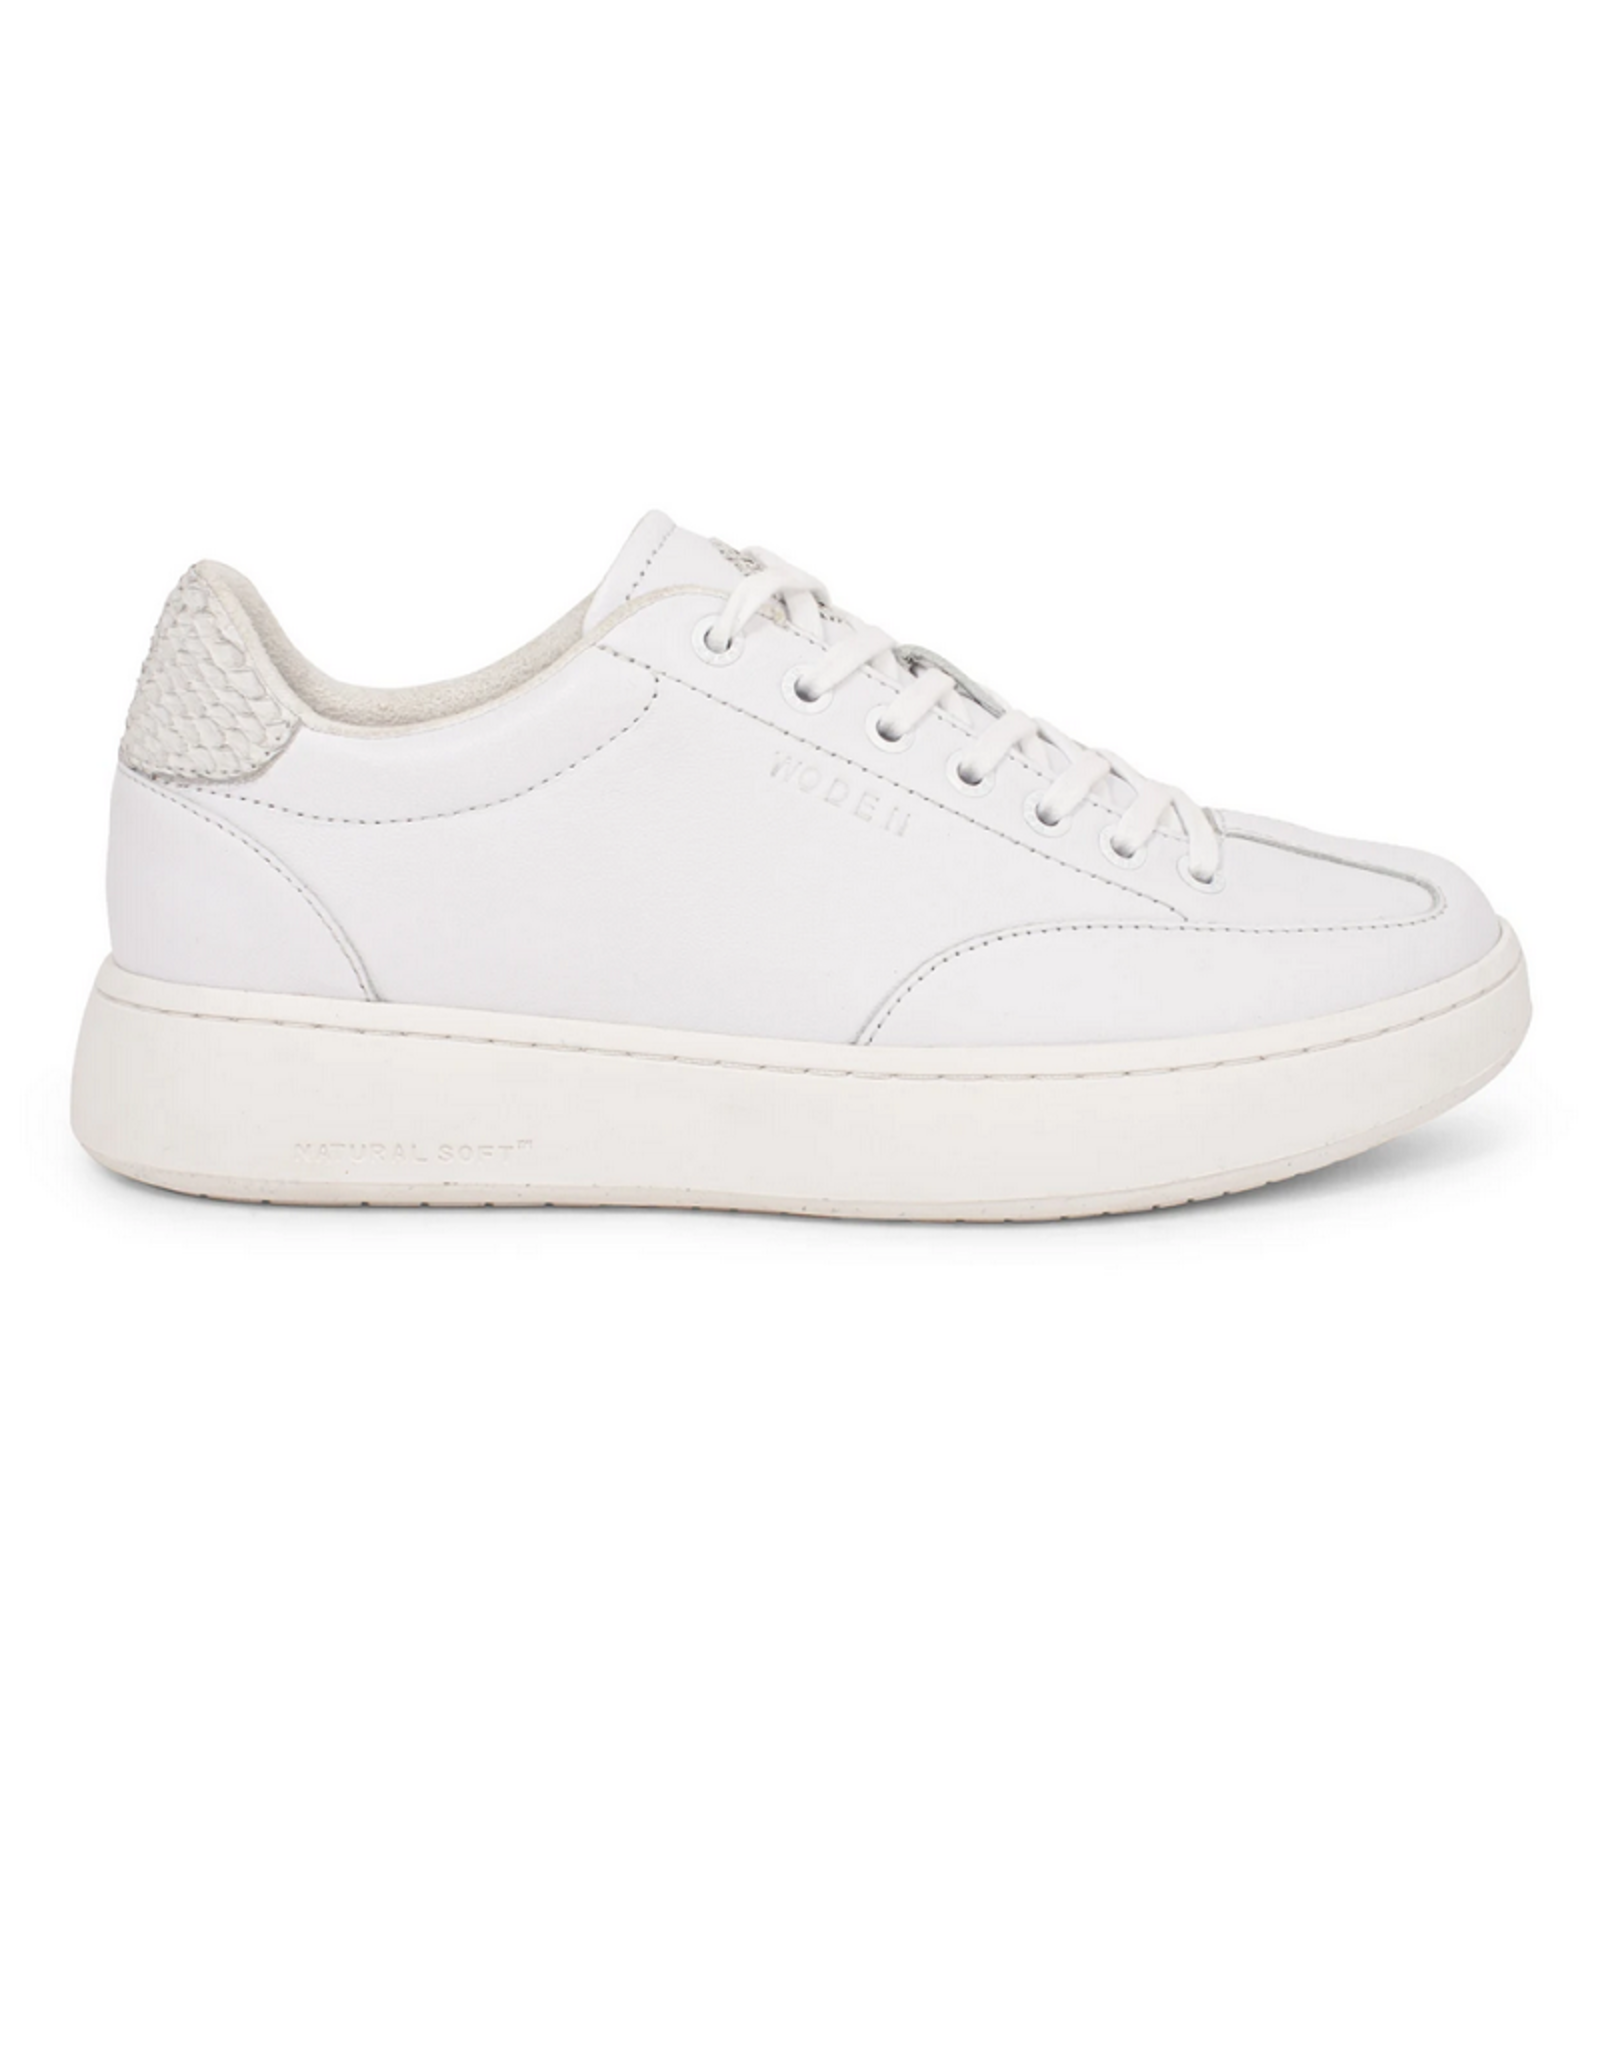 Woden Woden Pernille Leather Bright white